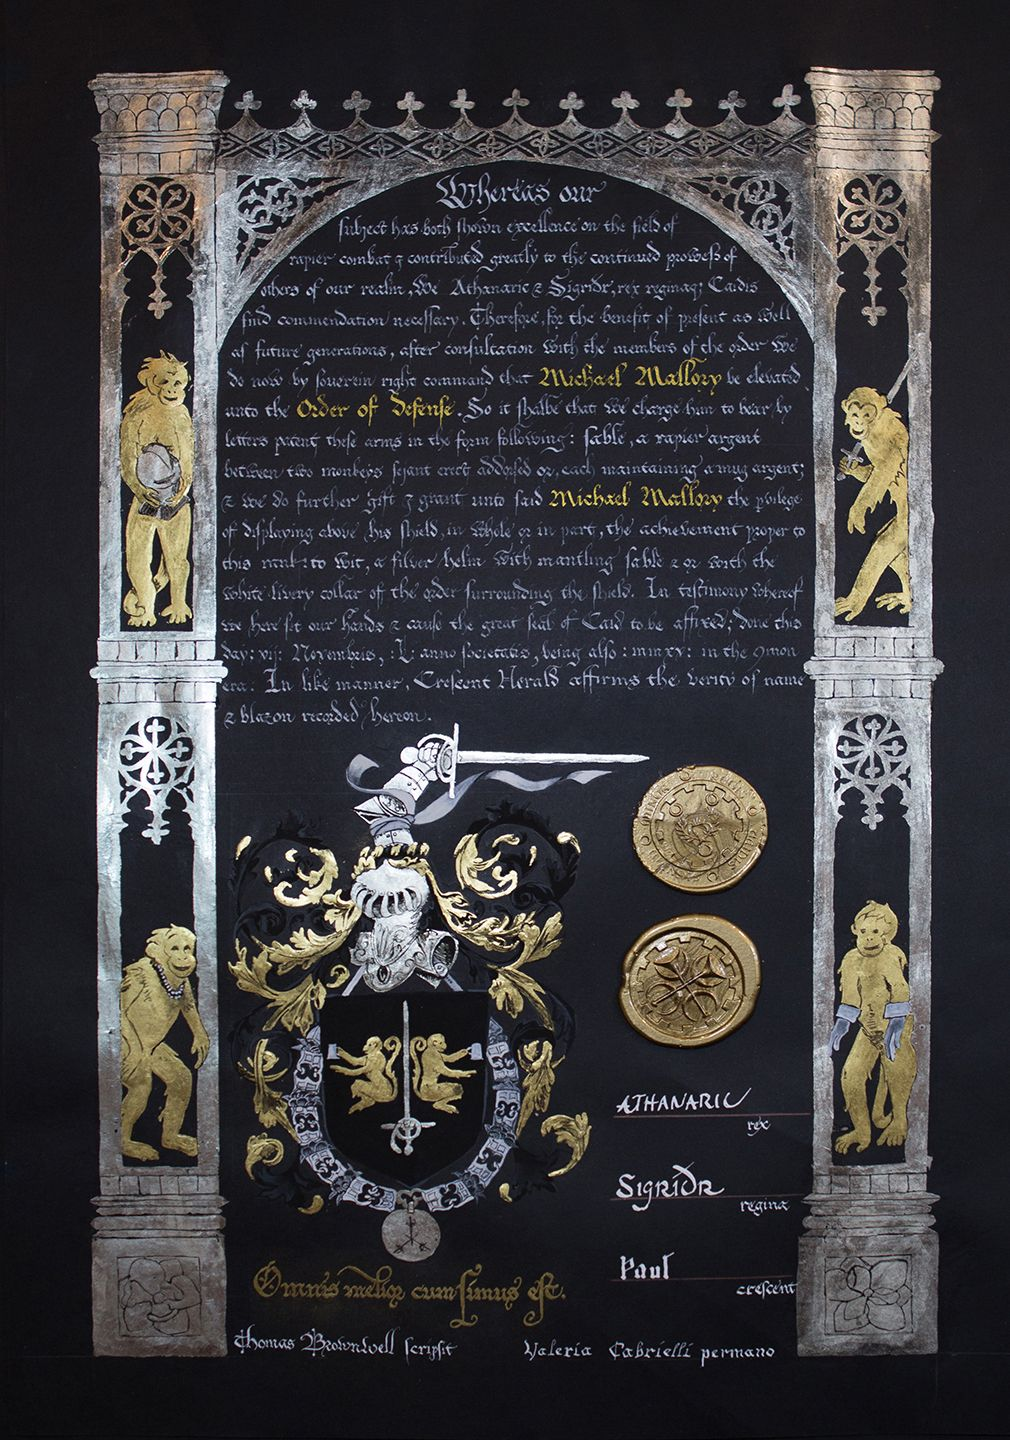 Master of Defense Scroll for Master Michael Mallory.  Calligraphy by Master Thomas Brownwell.  Illumination by me, Valeria Cabrielli (Nora Kirkeby).  27 sheets of gold leaf in all (20 white and 7 yellow).  Based on armorial plates for the Order of the Golden Fleece.